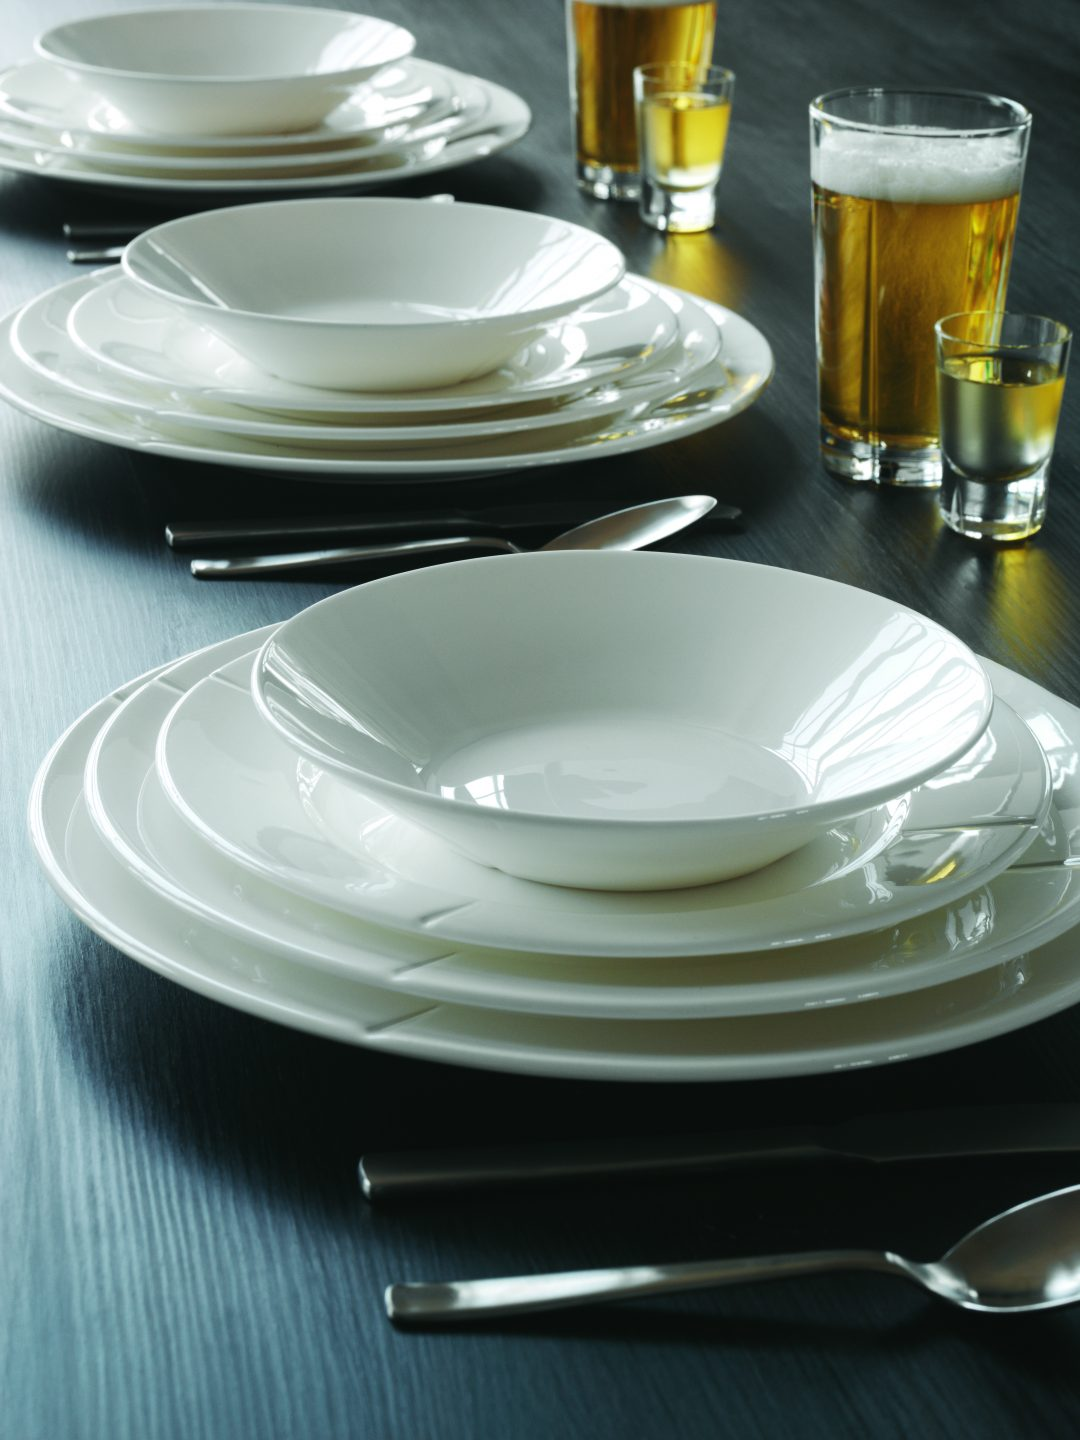 Grand Cru porcelain collection by Rosendahl